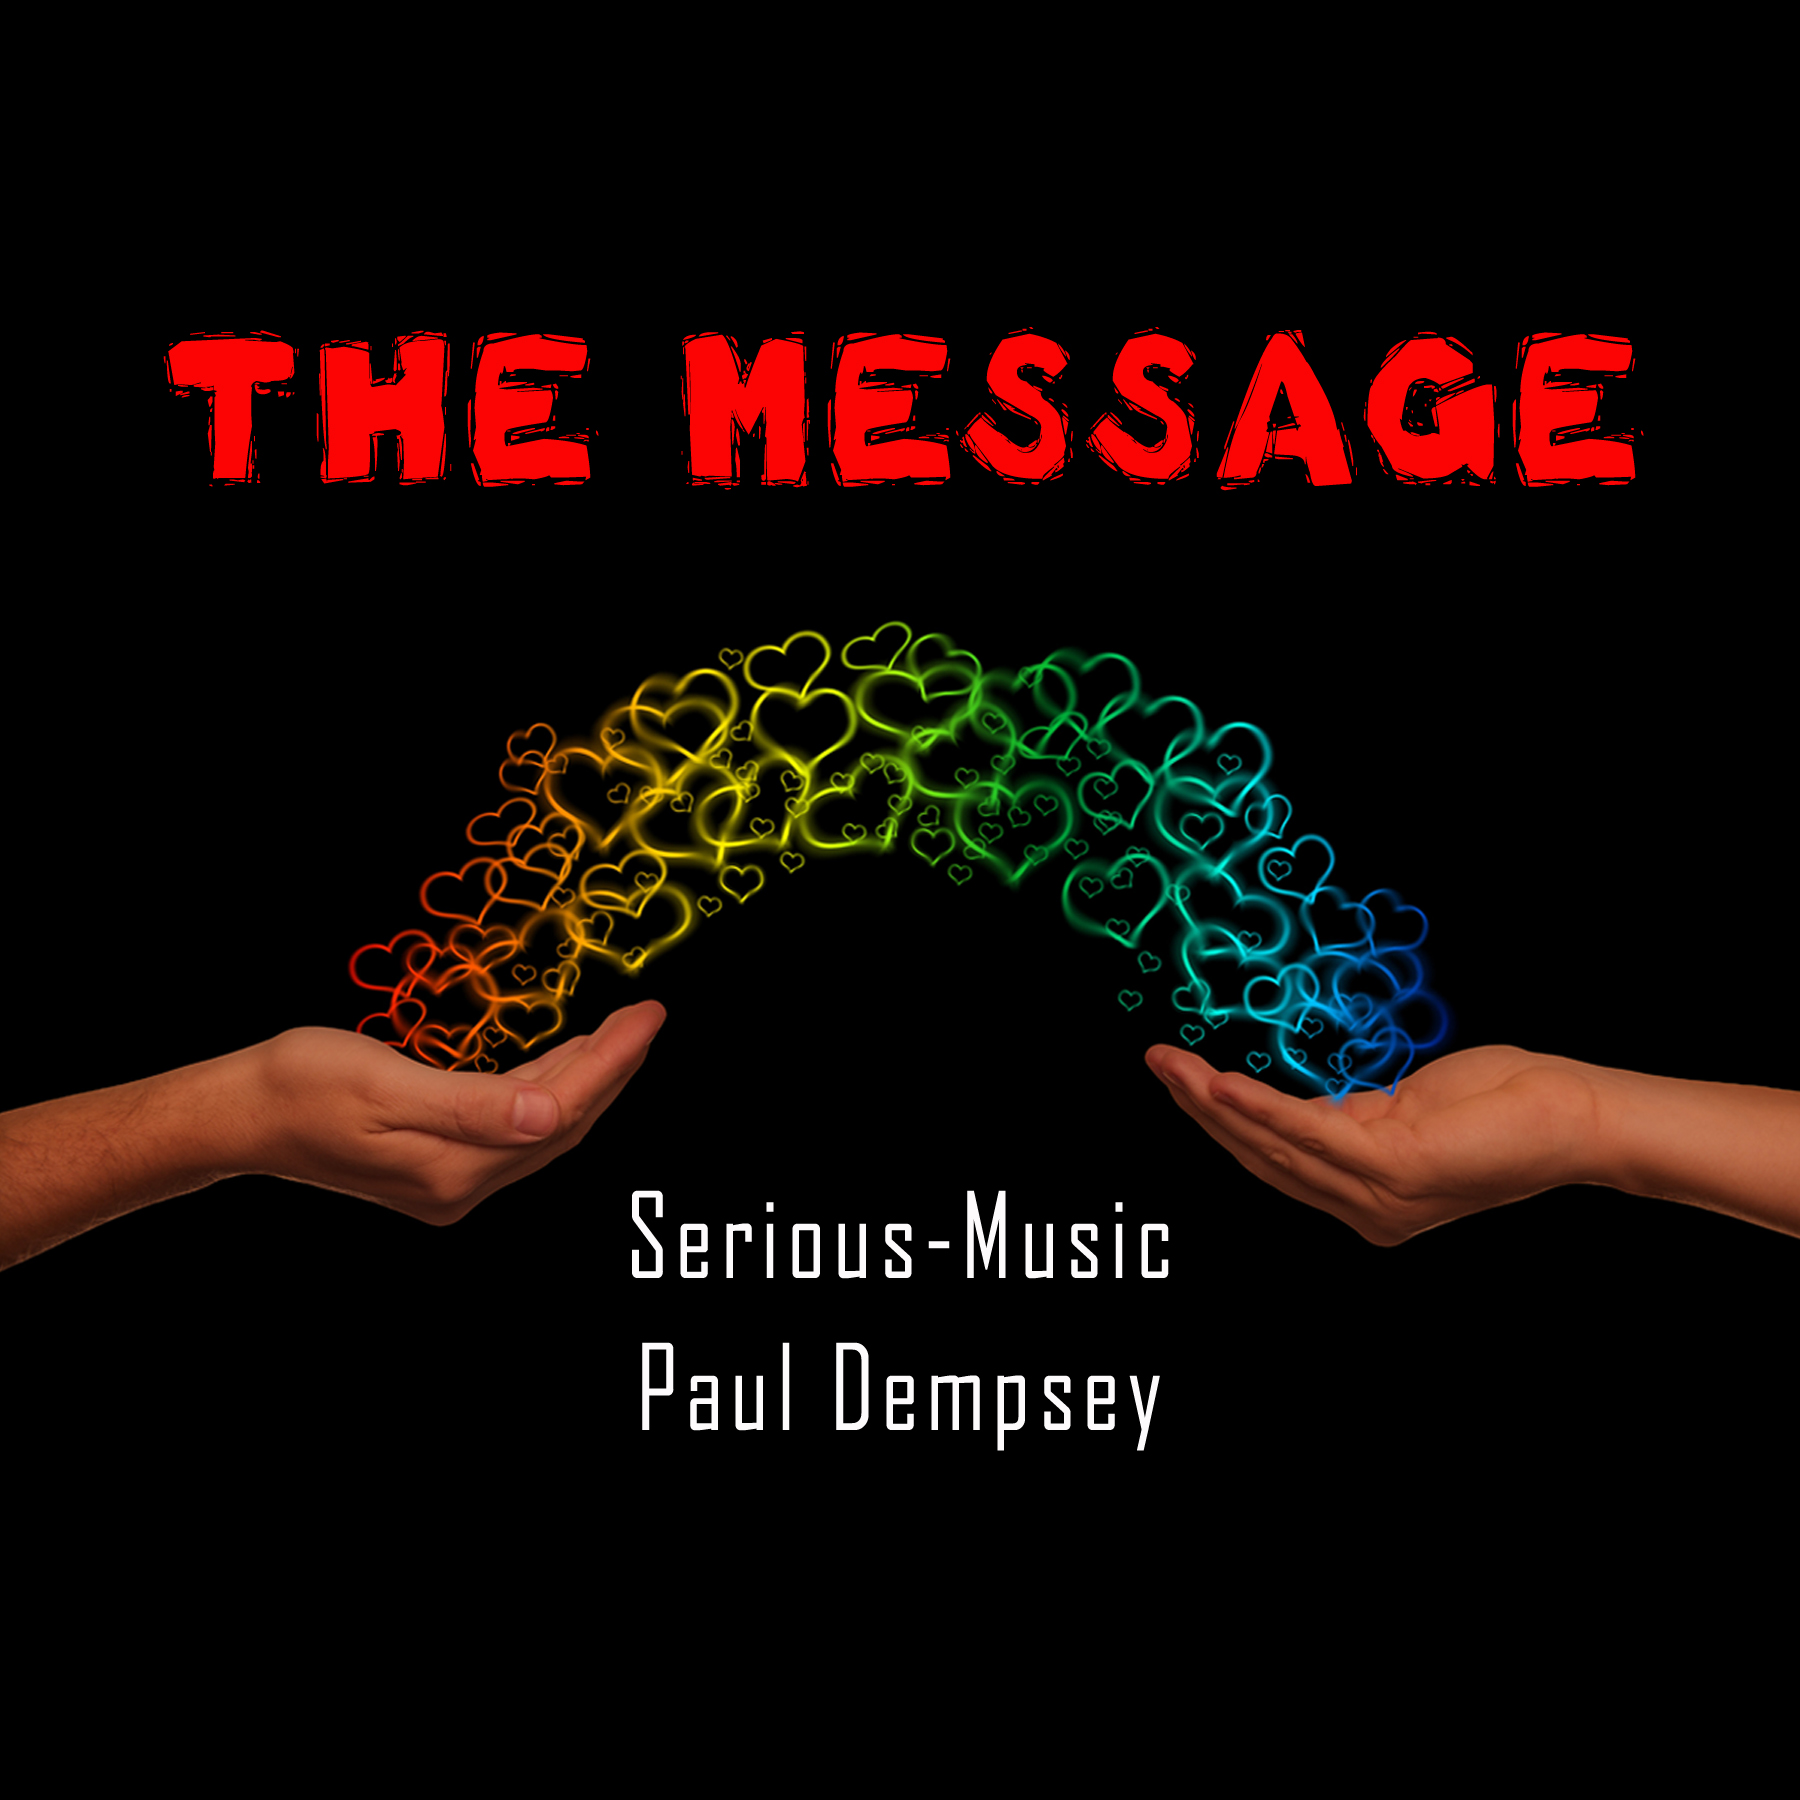 The Message feat. Paul Dempsey